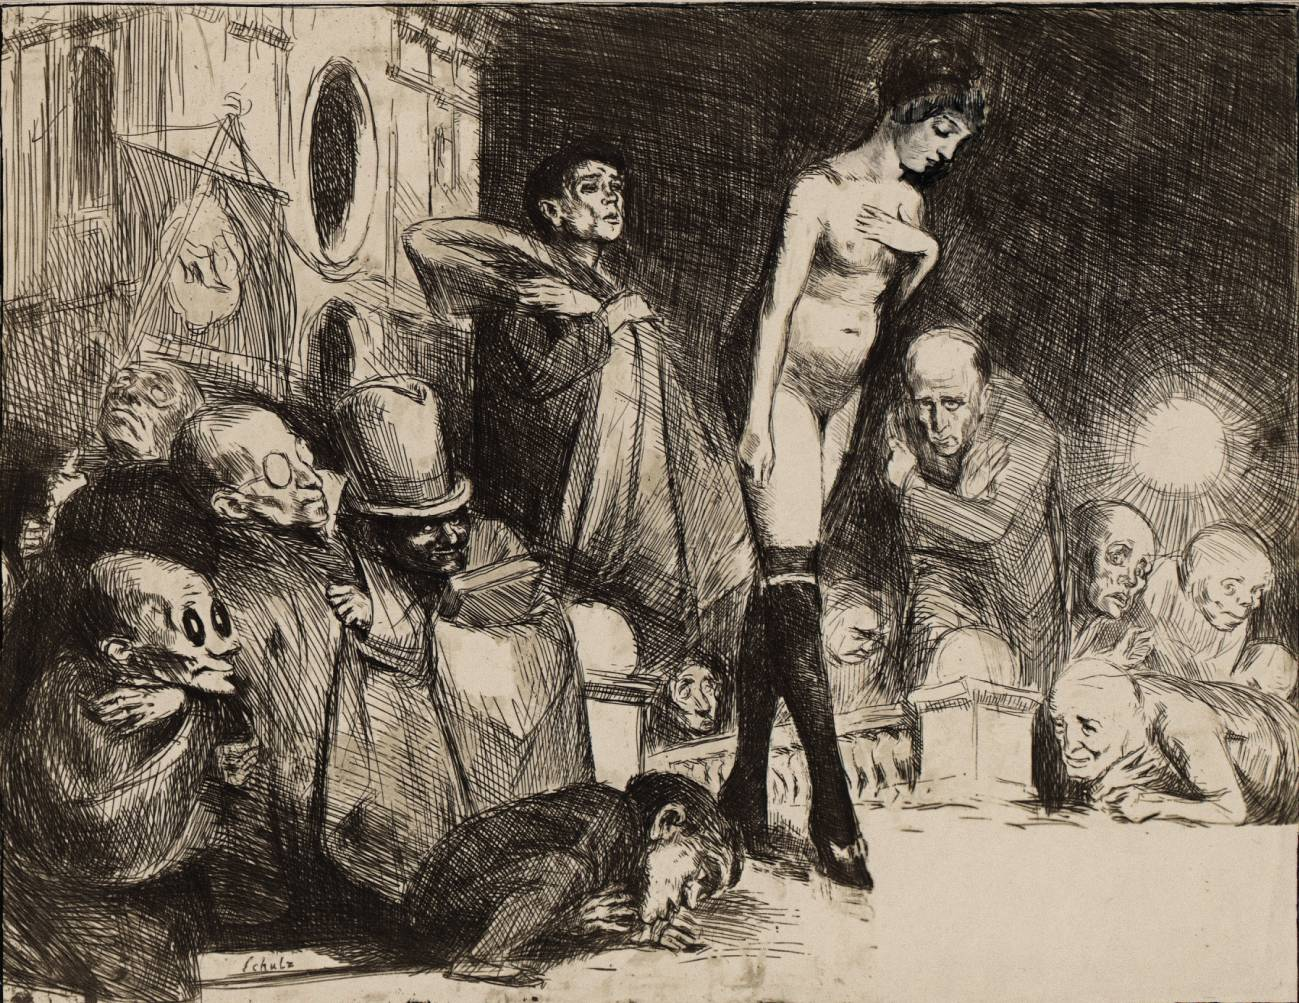 Bruno Schulz's The Procession (Procesja)  - a cliche-verre print from the series The Idolatry Booke